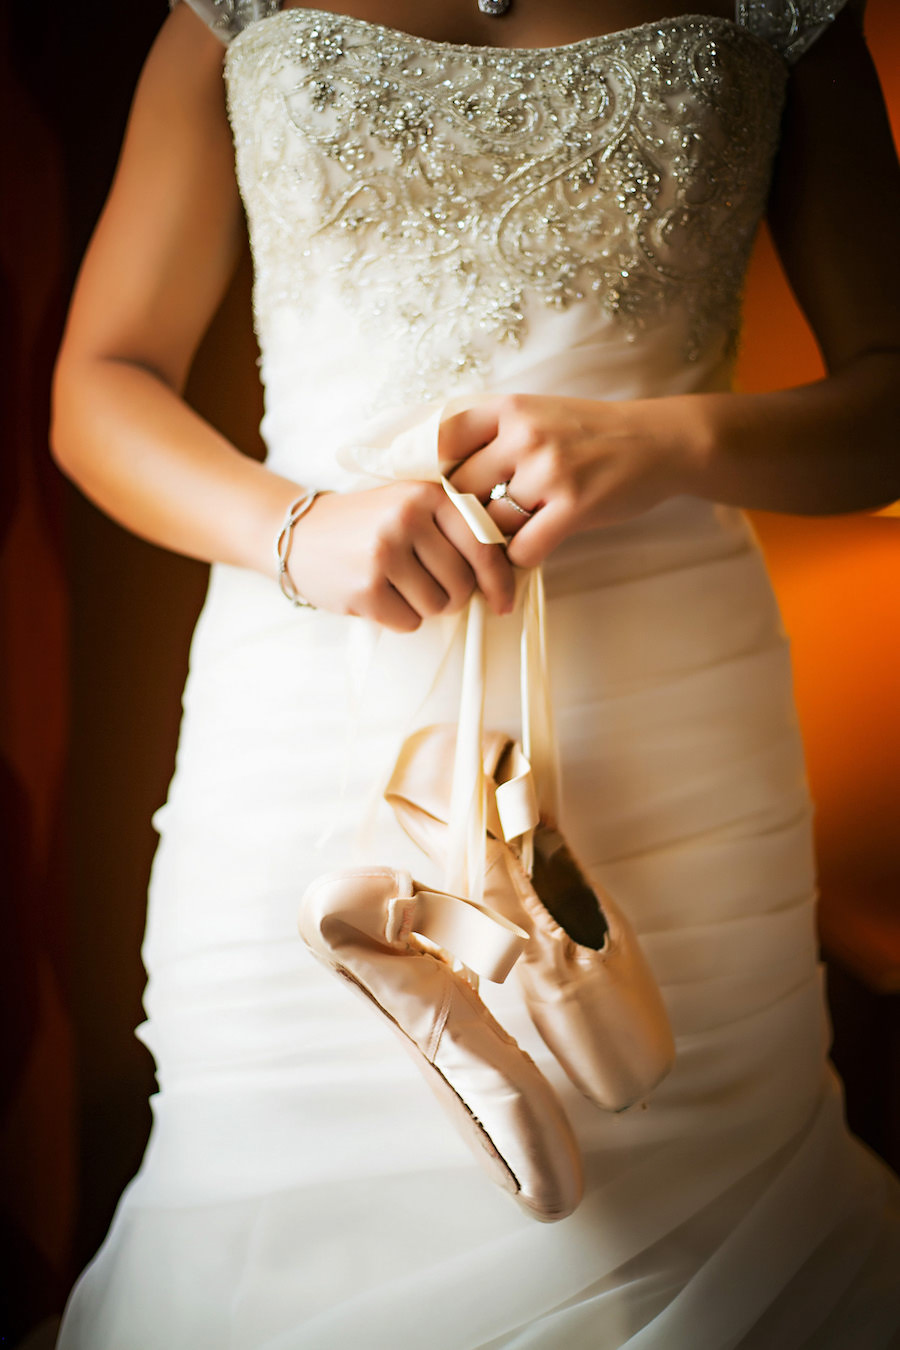 Tampa Bridal Wedding Portrait in Beaded, Ivory Wedding Dress and Pink Ballet Shoes Tampa Wedding Photographers Limelight Photography